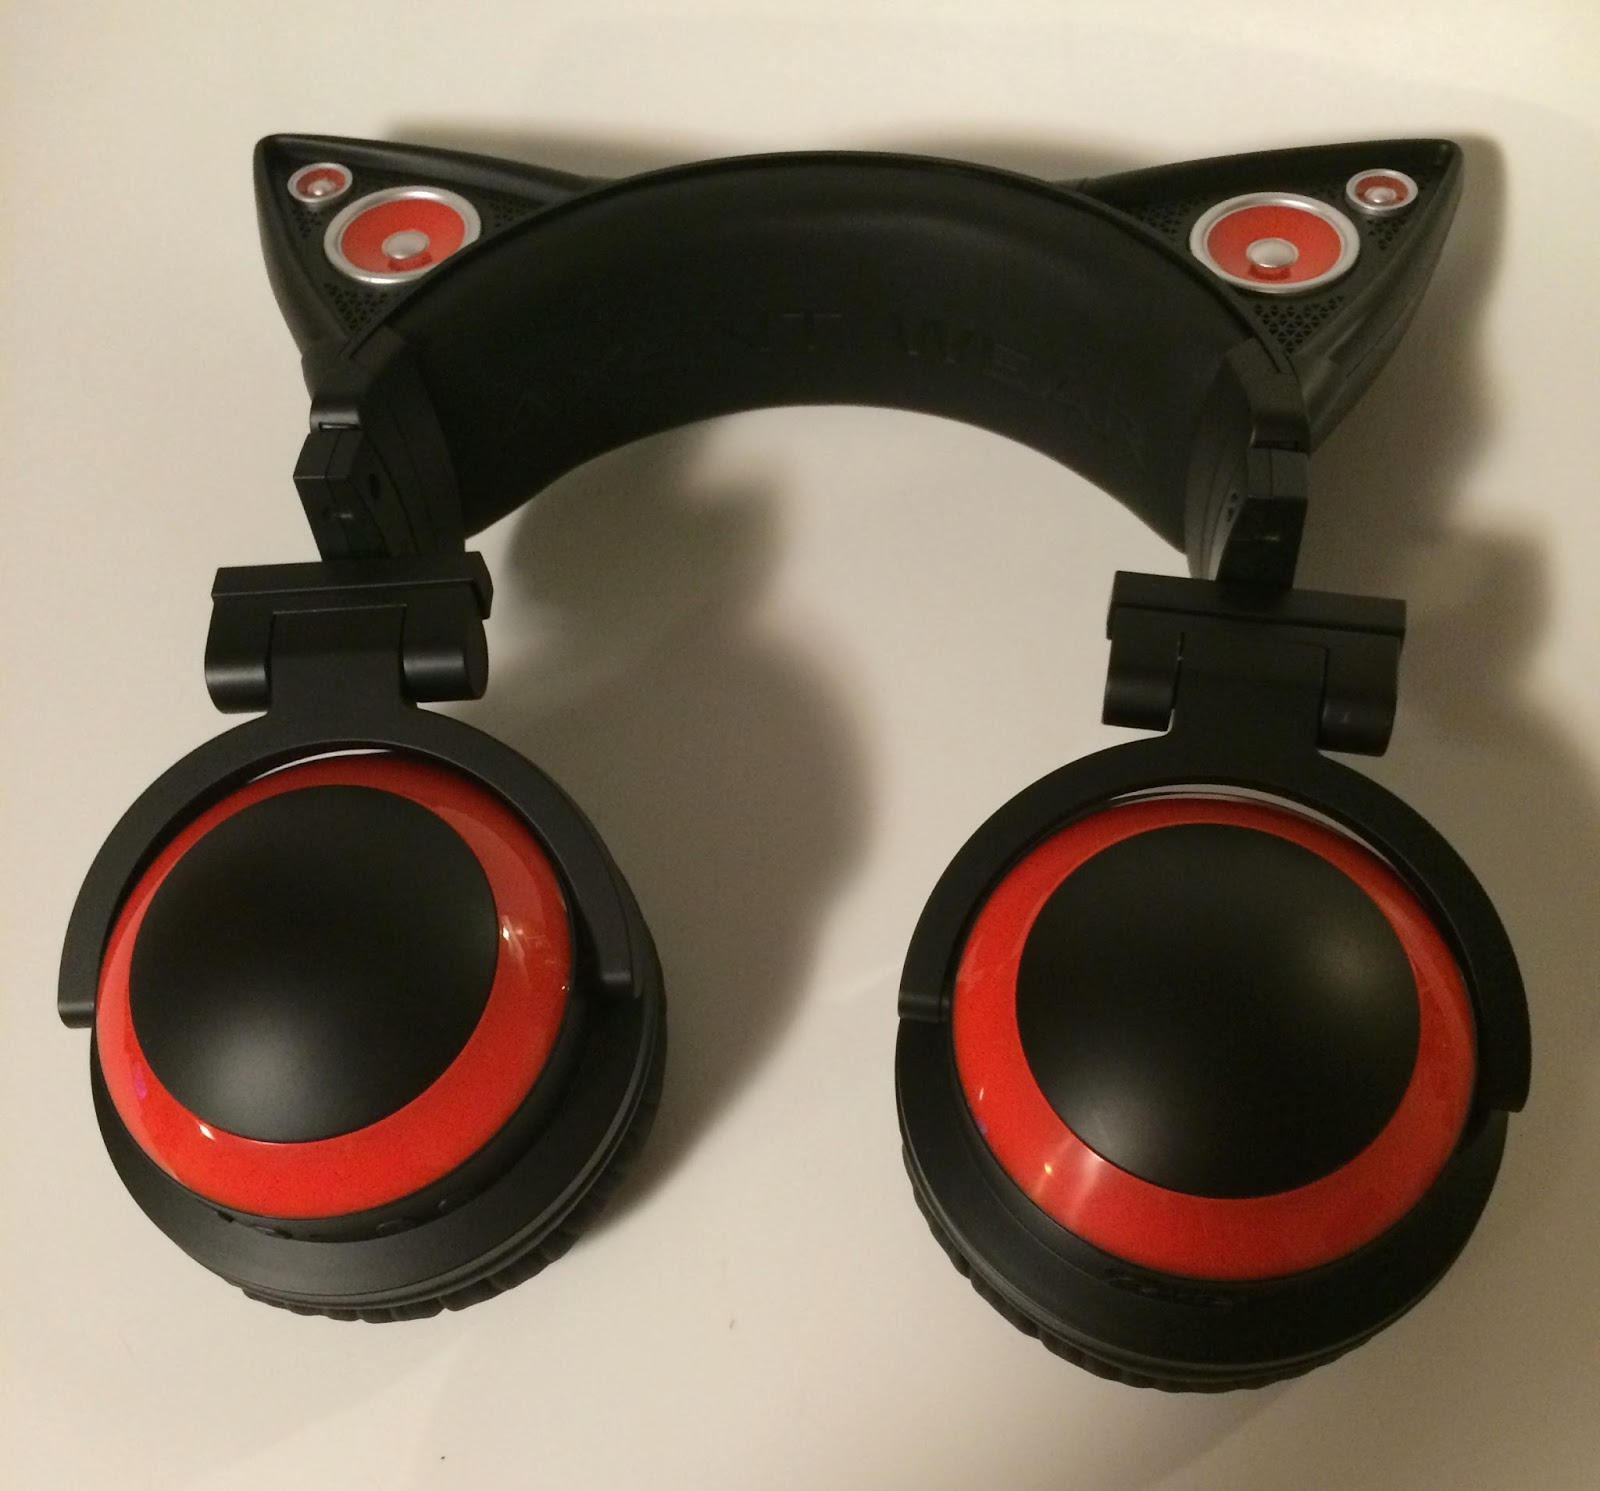 Squishy Sound Cat S Ear : Unboxing and Review - Axent Wear Cat Ear Headphones. Quirky and Curvy